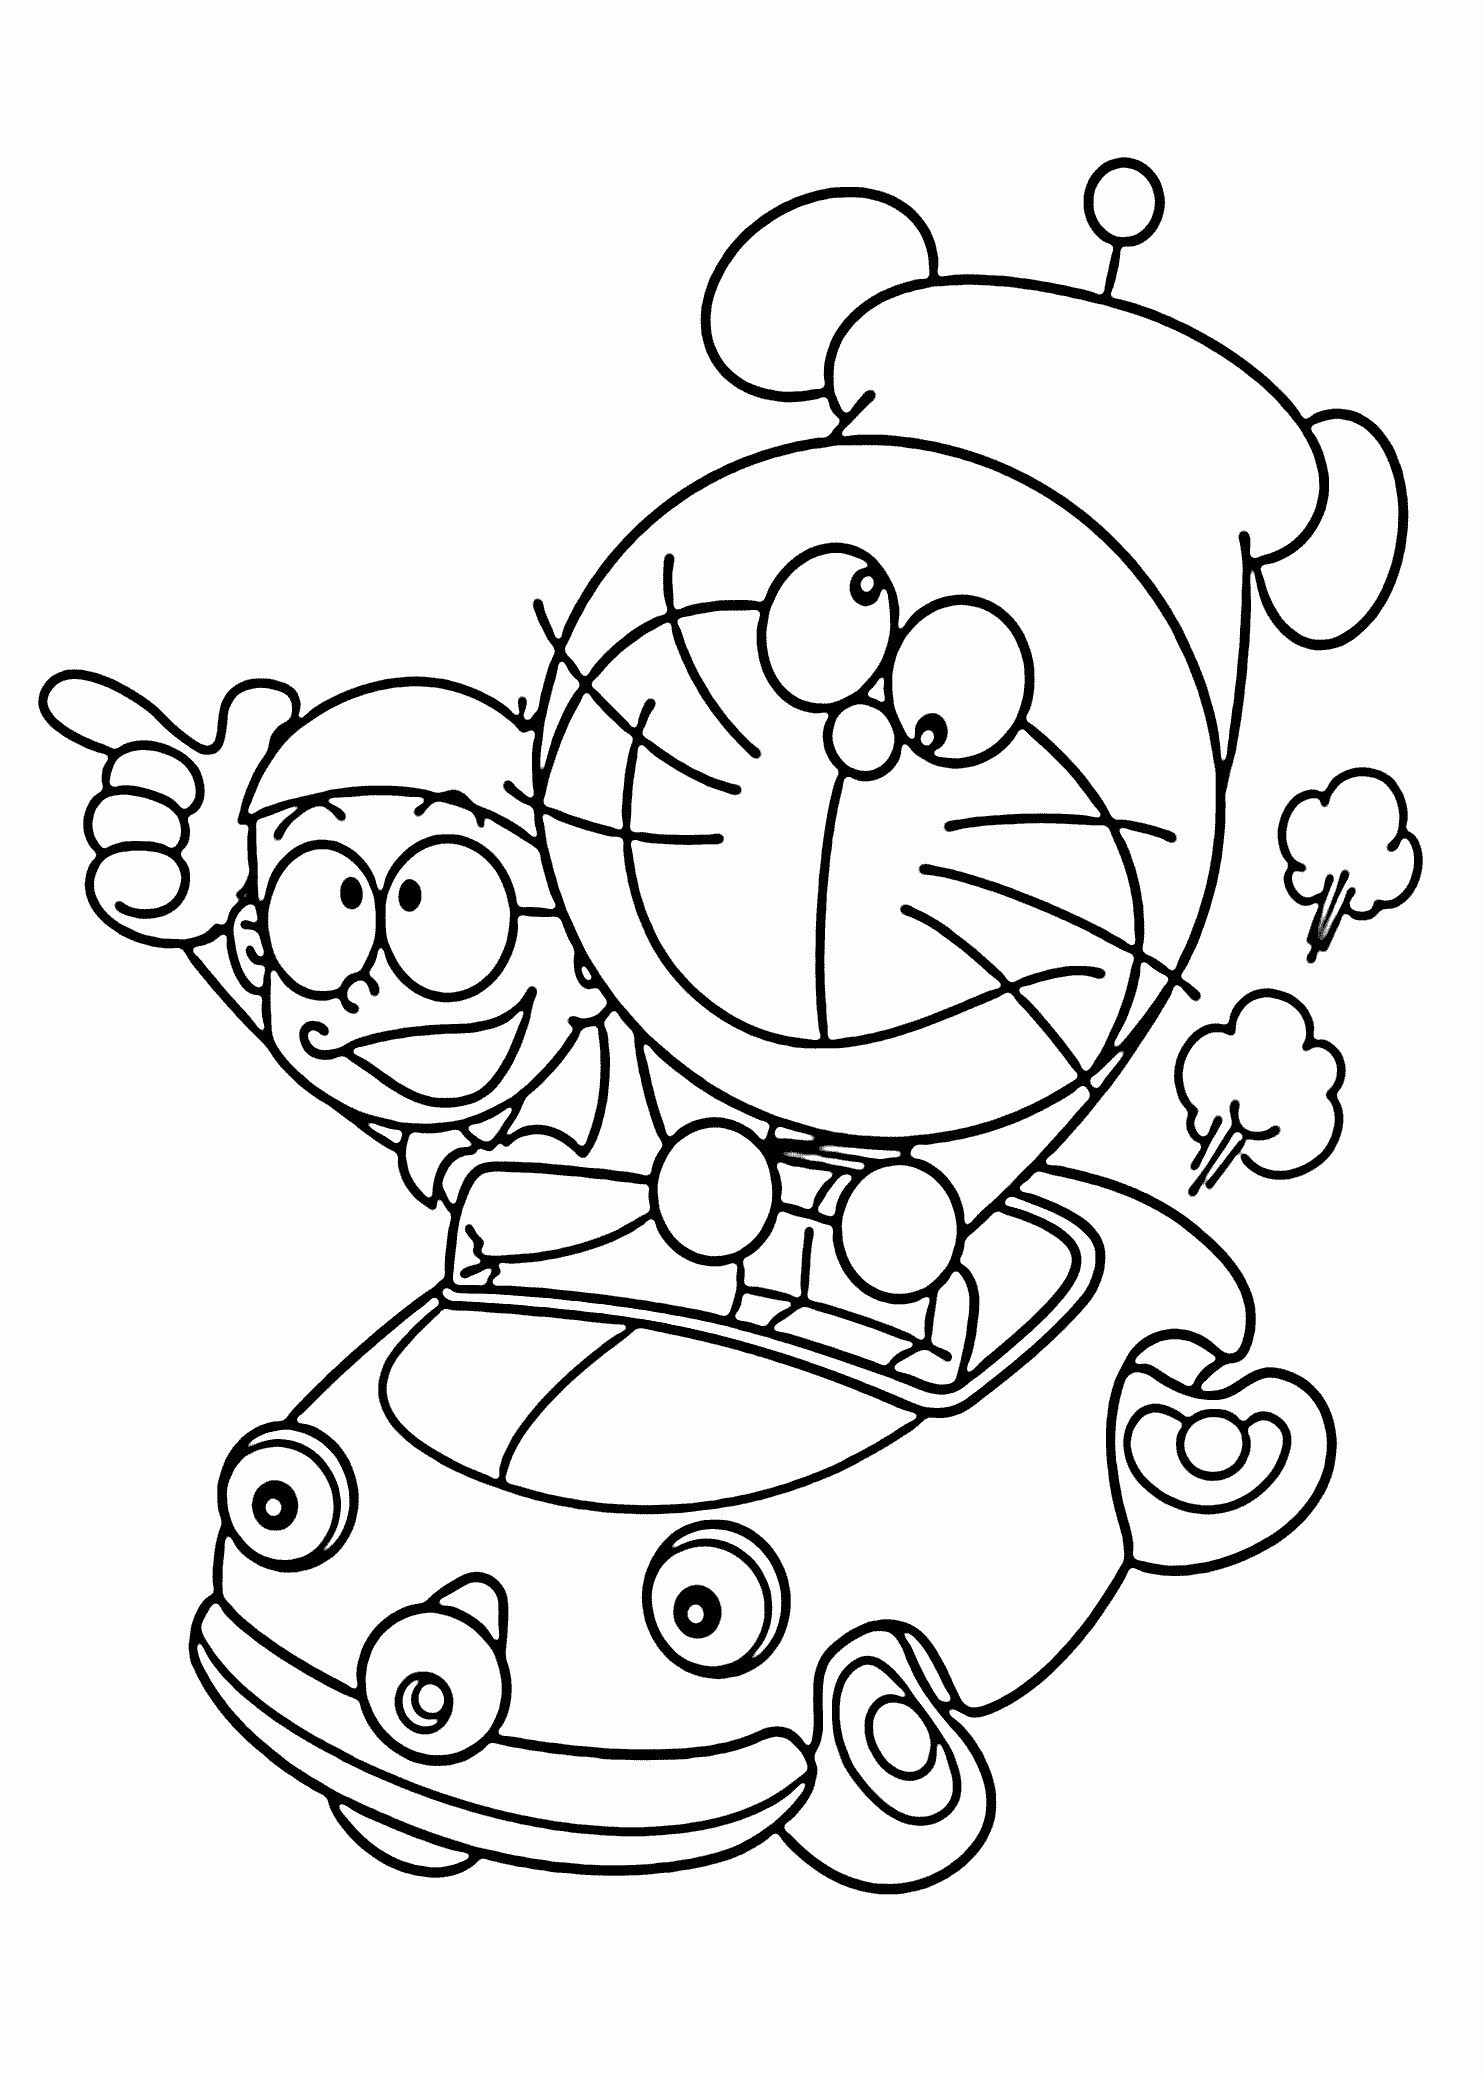 all about me coloring pages Download-Esl Coloring Worksheets 15 Fresh Esl Coloring Pages Collection 13-a